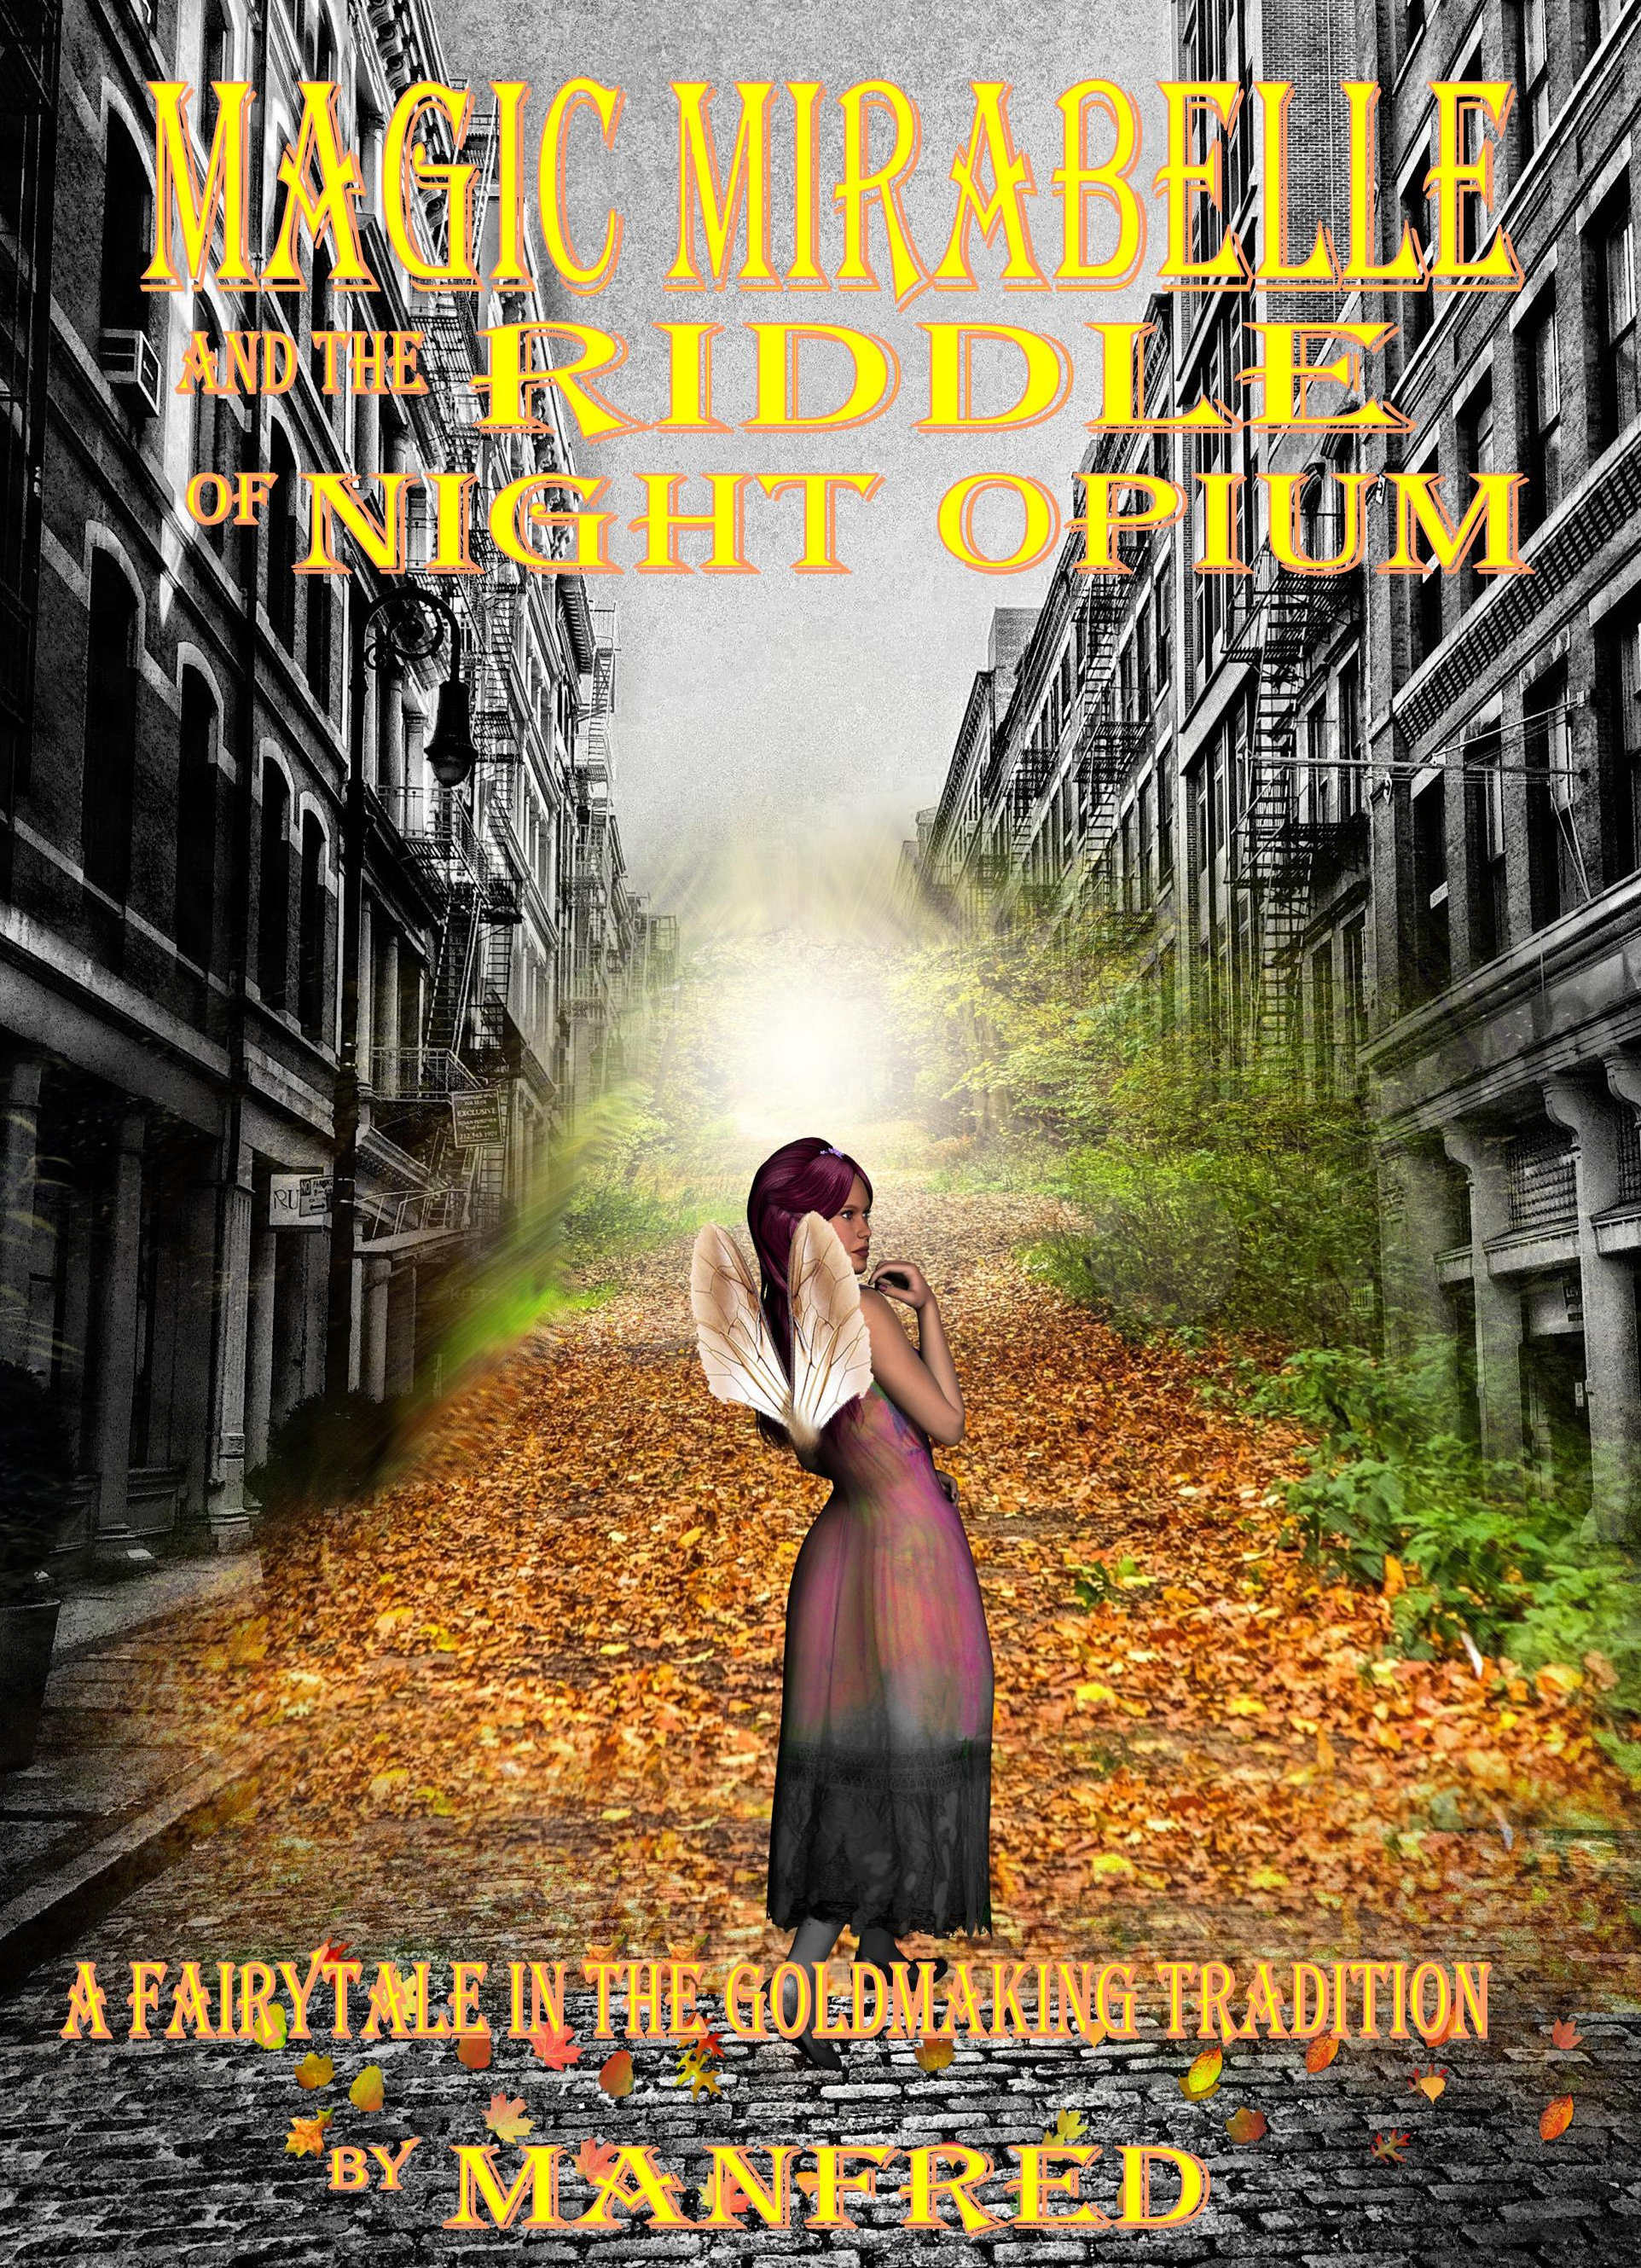 Magic Mirabelle and the Riddle of the Night Opium